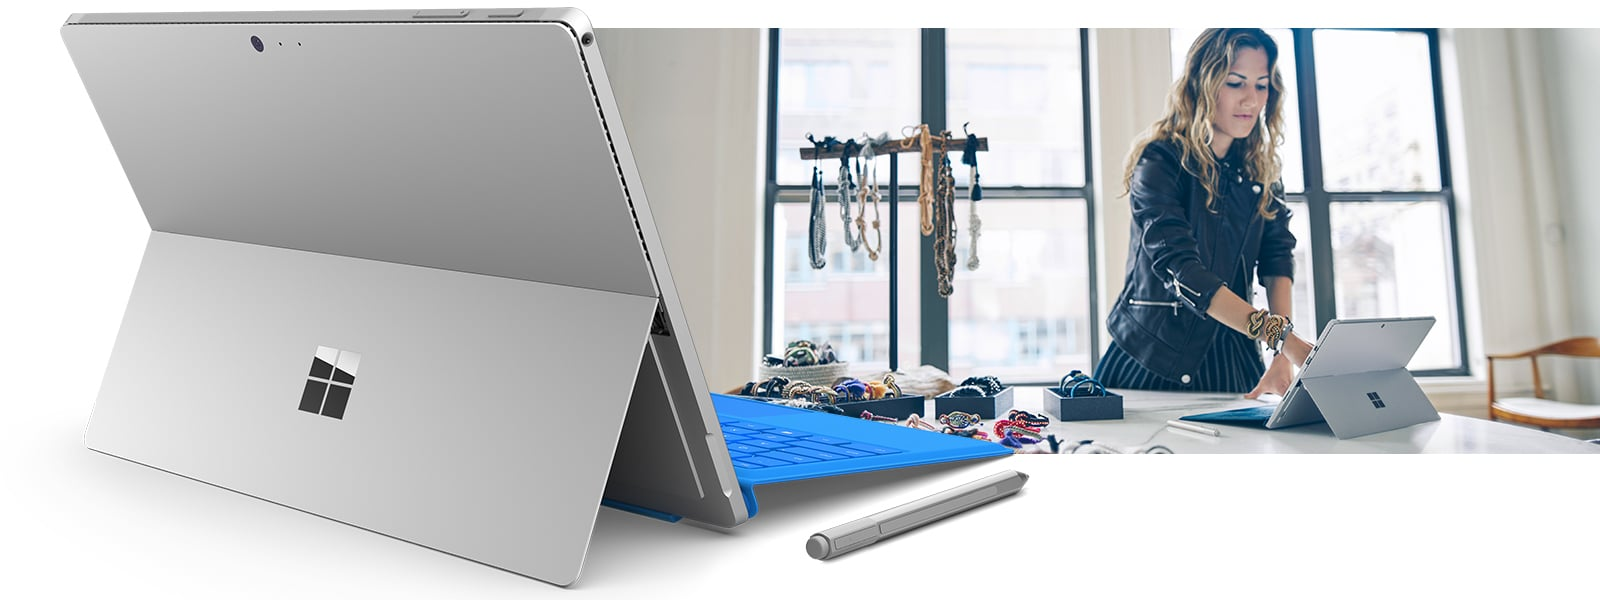 Surface Pro 4 in laptop mode, as seen from behind with an image of woman touching Surface Pro 4 screen on a desk in a jewelry workshop